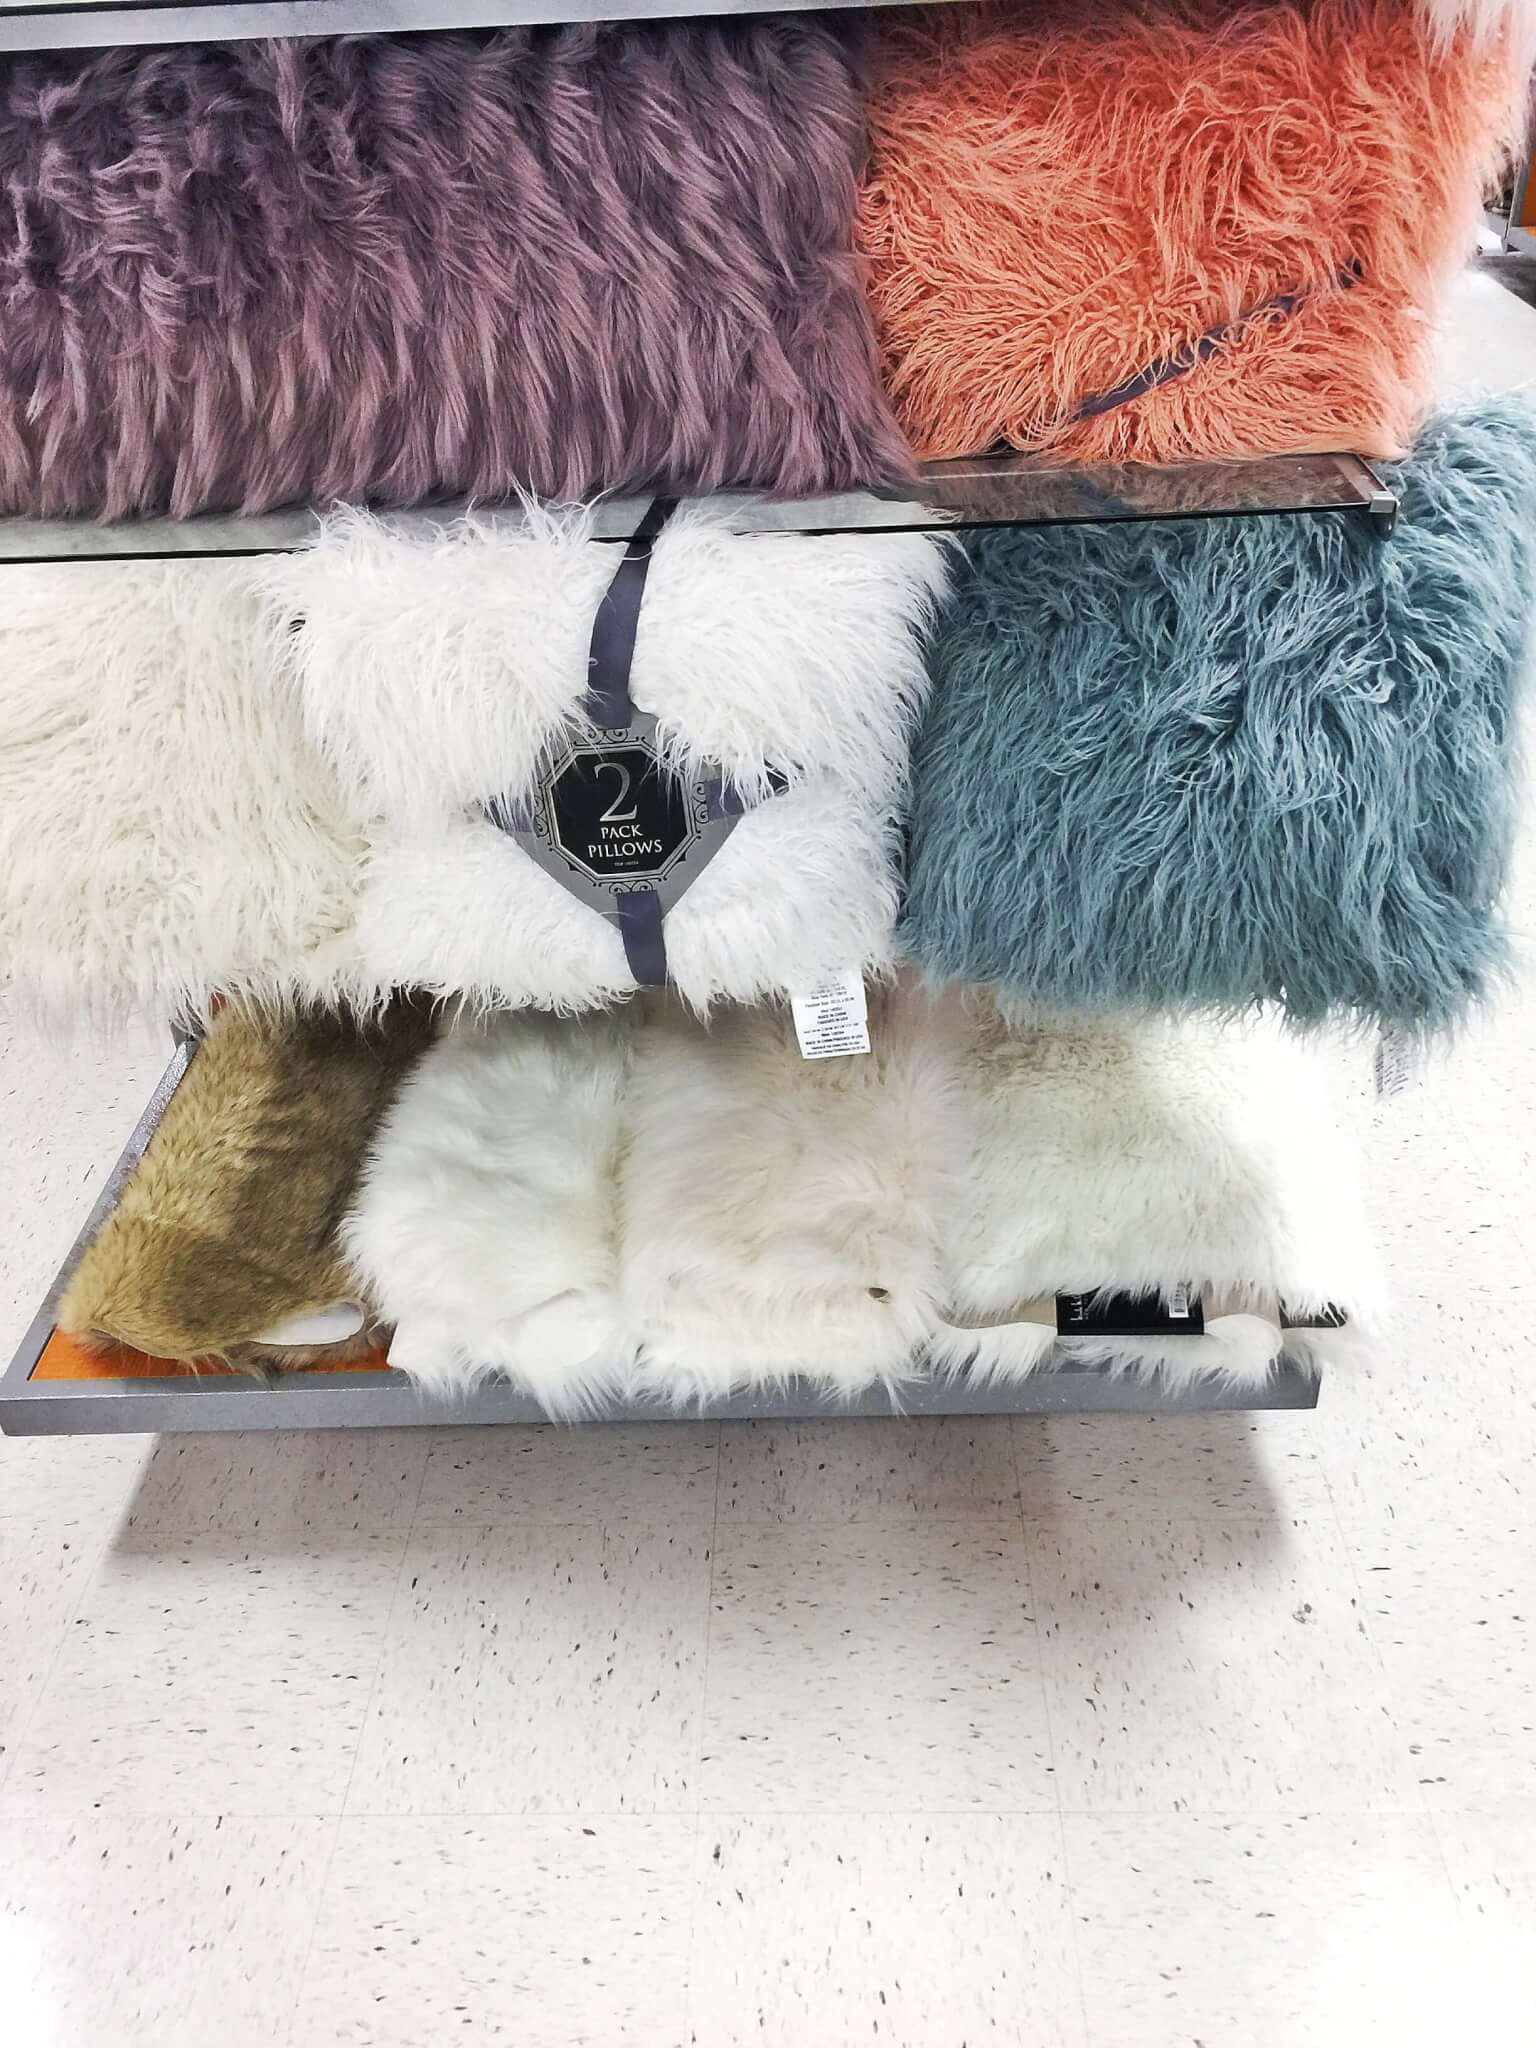 The best beauty finds can be spotted at your local TJ Maxx - come journey alongside of me as I point out the obvious and not-so-obvious beauty steals!